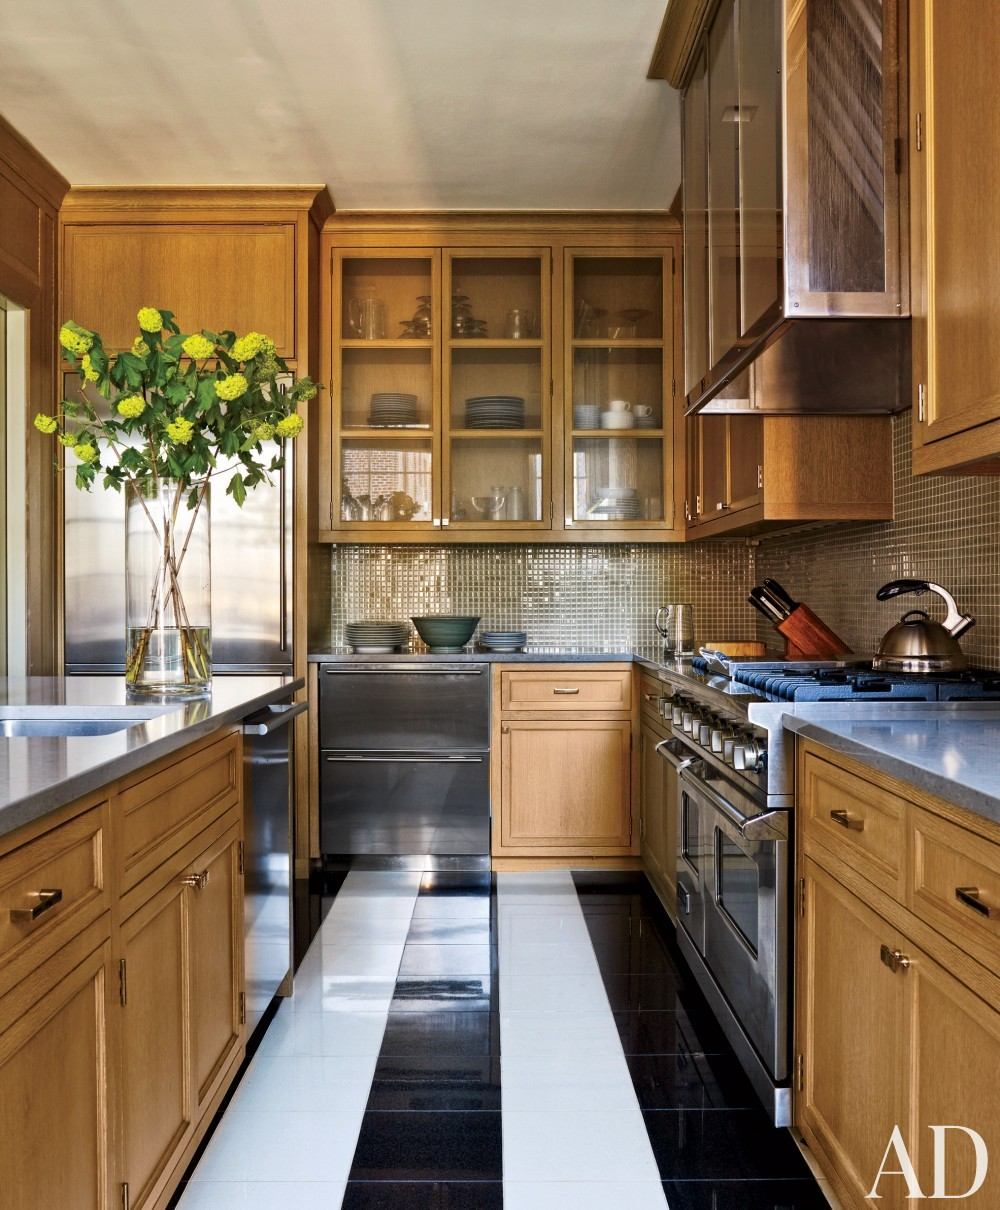 Modern Kitchen by Victoria Hagan Interiors and Peter Pennoyer Architects in New York, NY